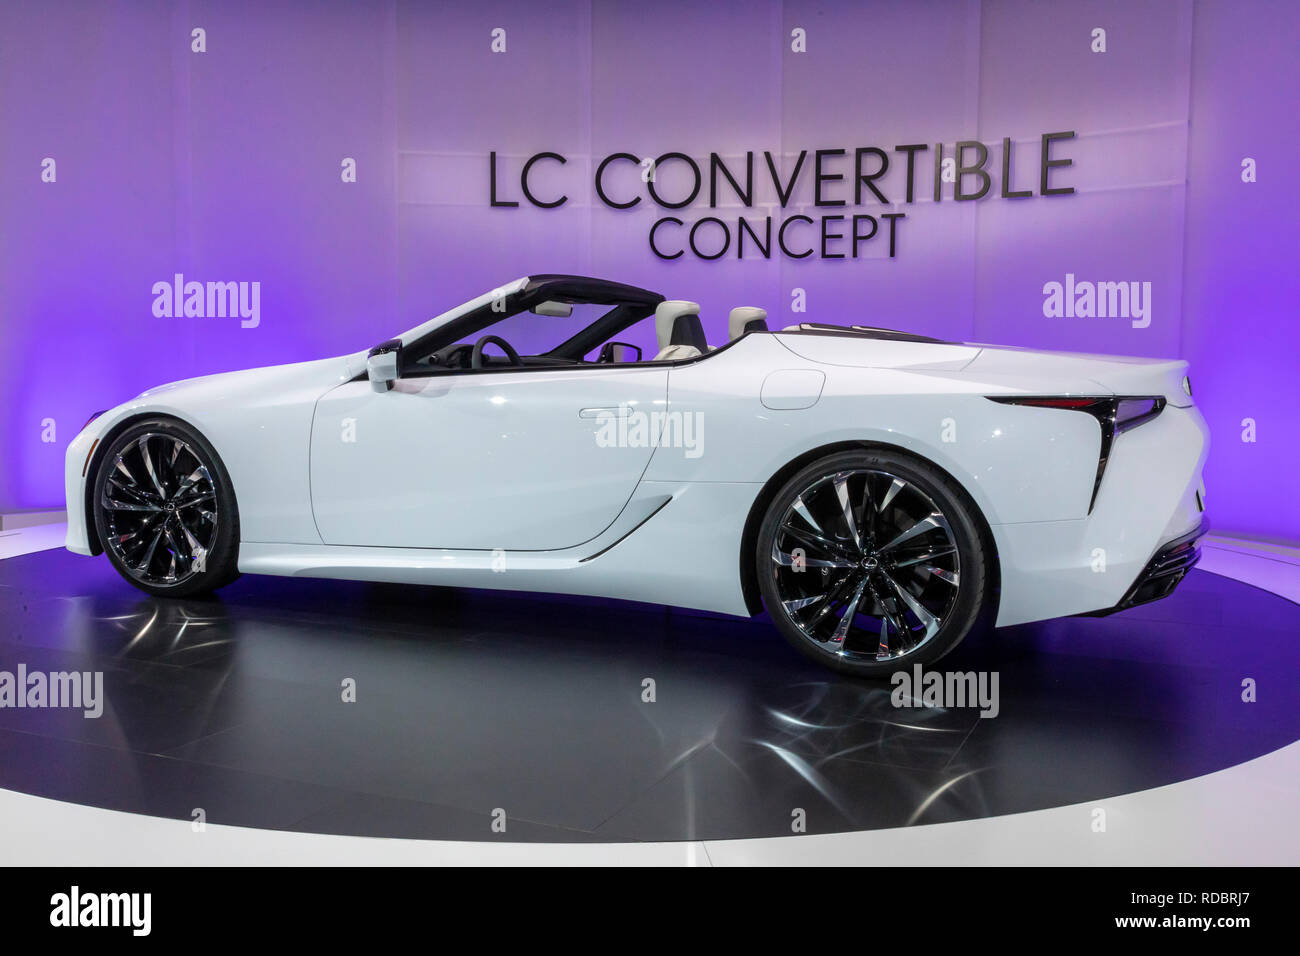 Detroit, Michigan - The Lexus LC Convertible concept car on display at the North American International Auto Show. - Stock Image